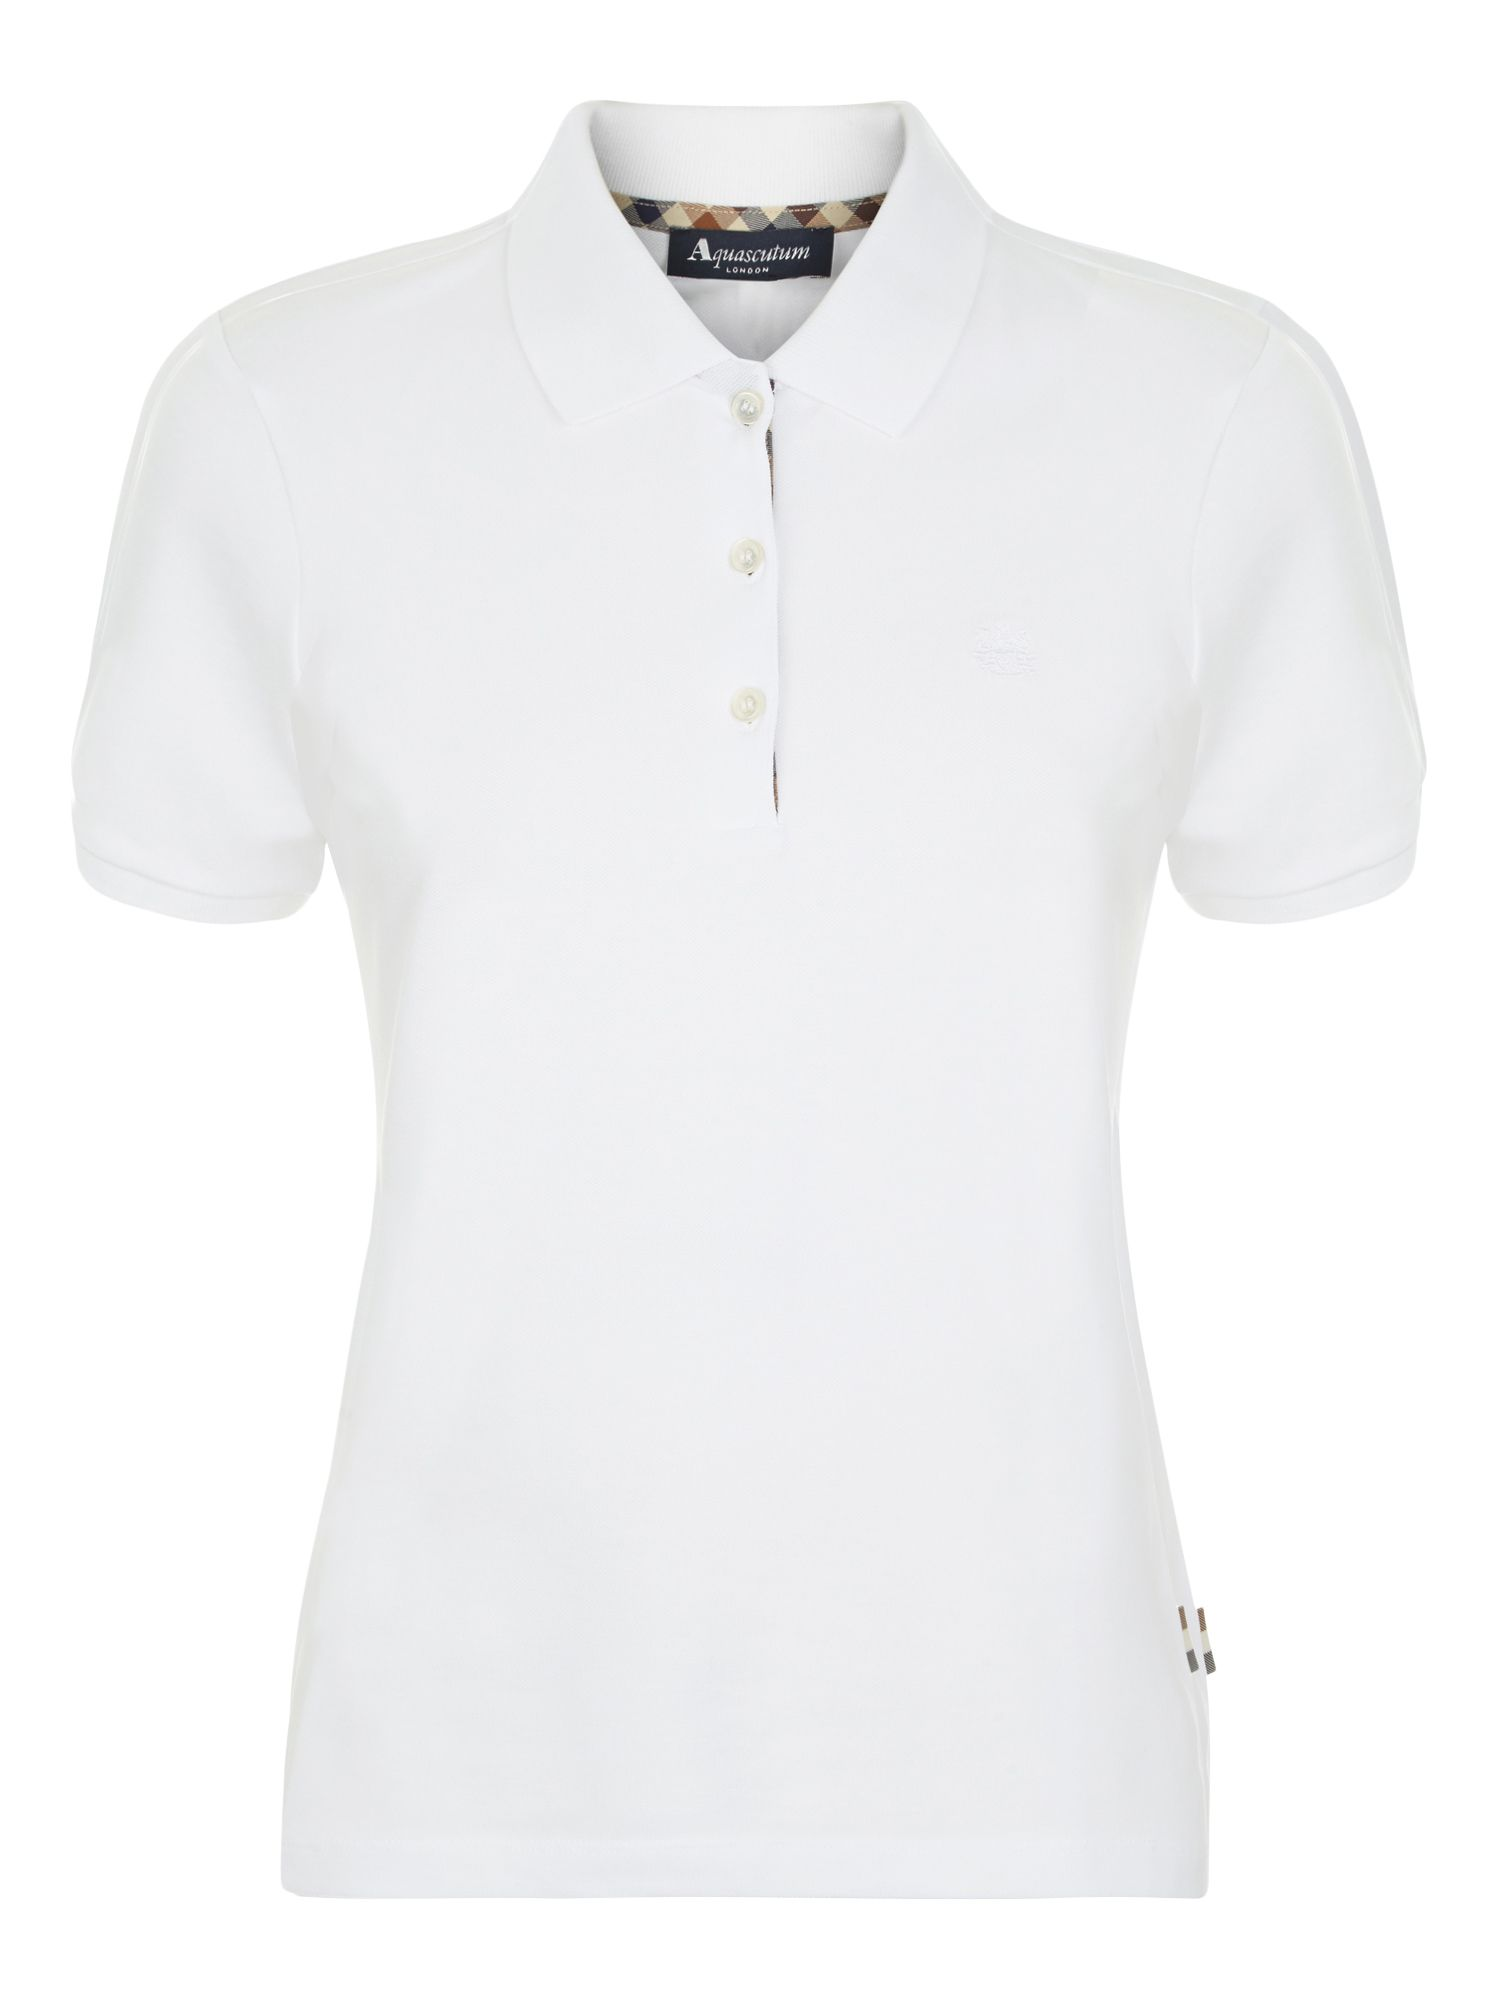 Aquascutum Justina Short Sleeve Piquet Polo, White